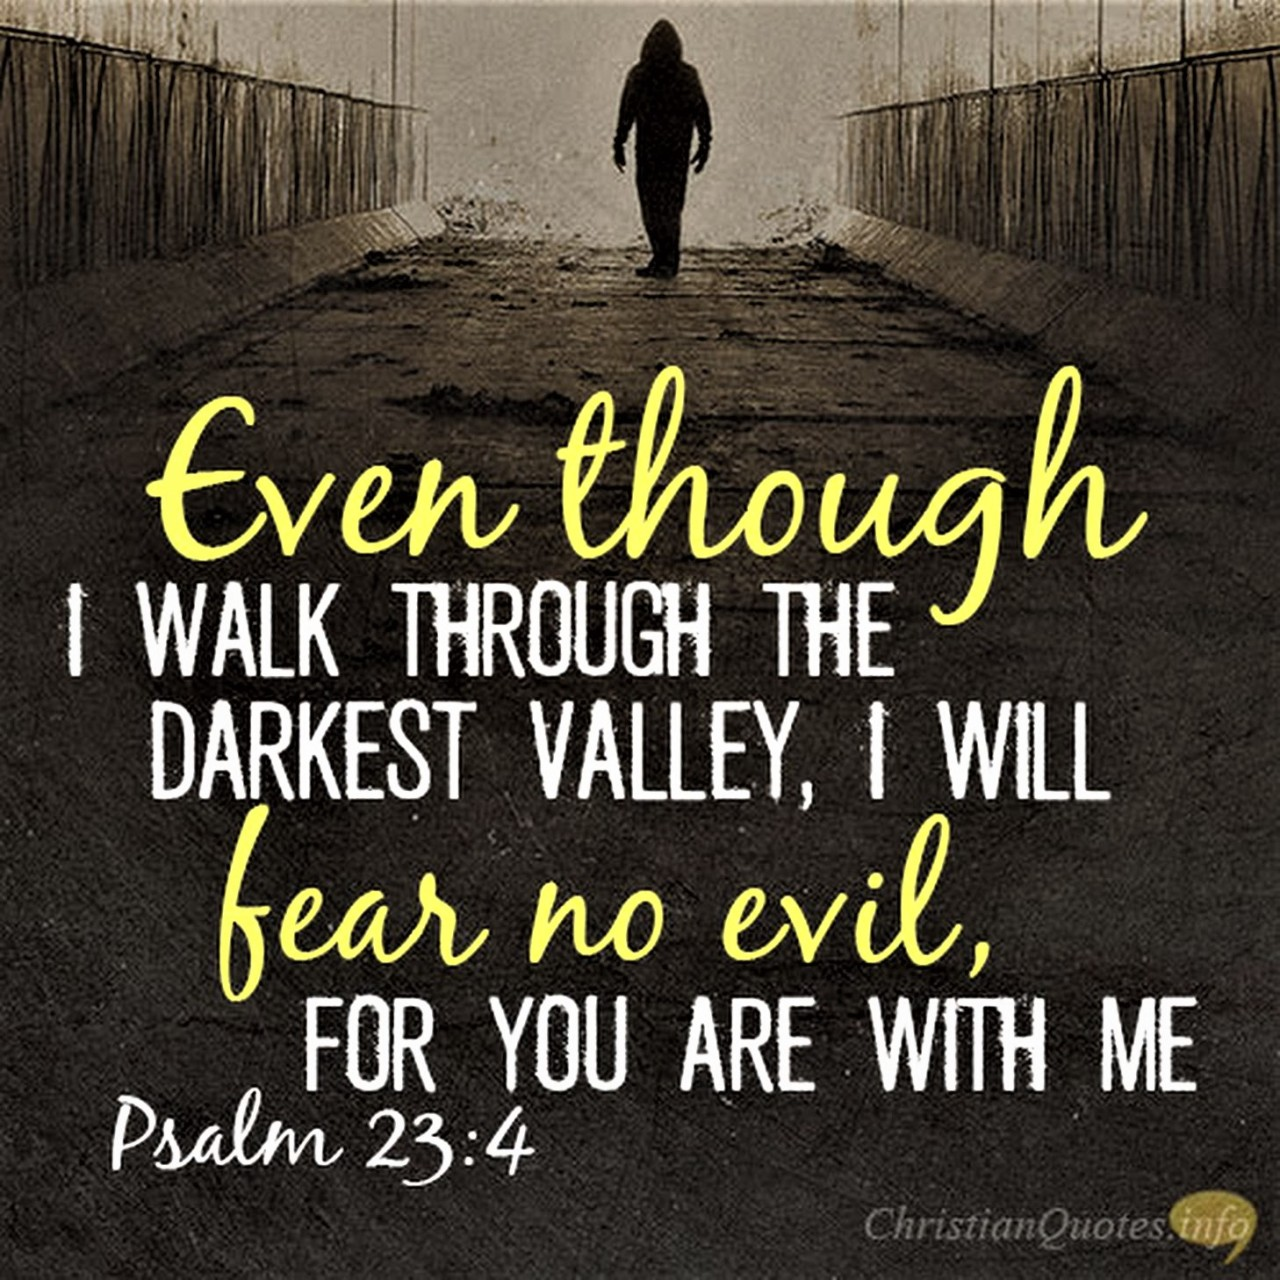 The Living... — Psalm 23:4 (NIV) - Even though I walk through...